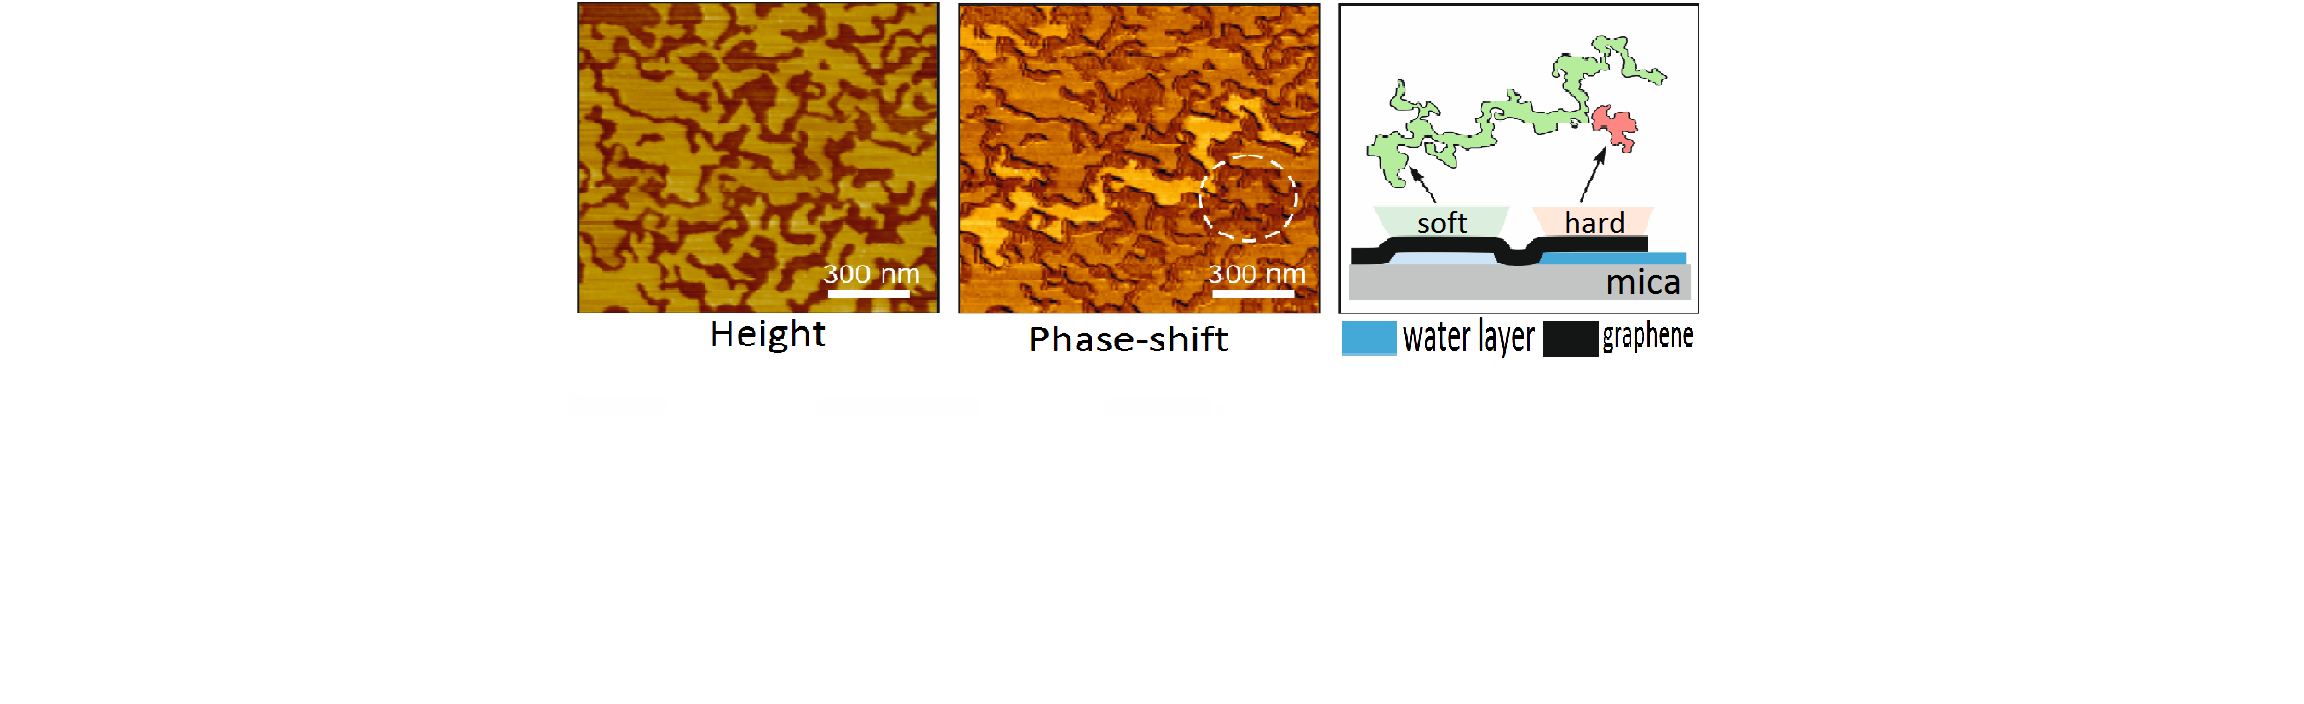 Non-monotonous_wetting_of_graphene-mica_and_MoS2-mica_interfaces_with_a_molecular_water_layer_unterschrift_bearbeitet_5.png